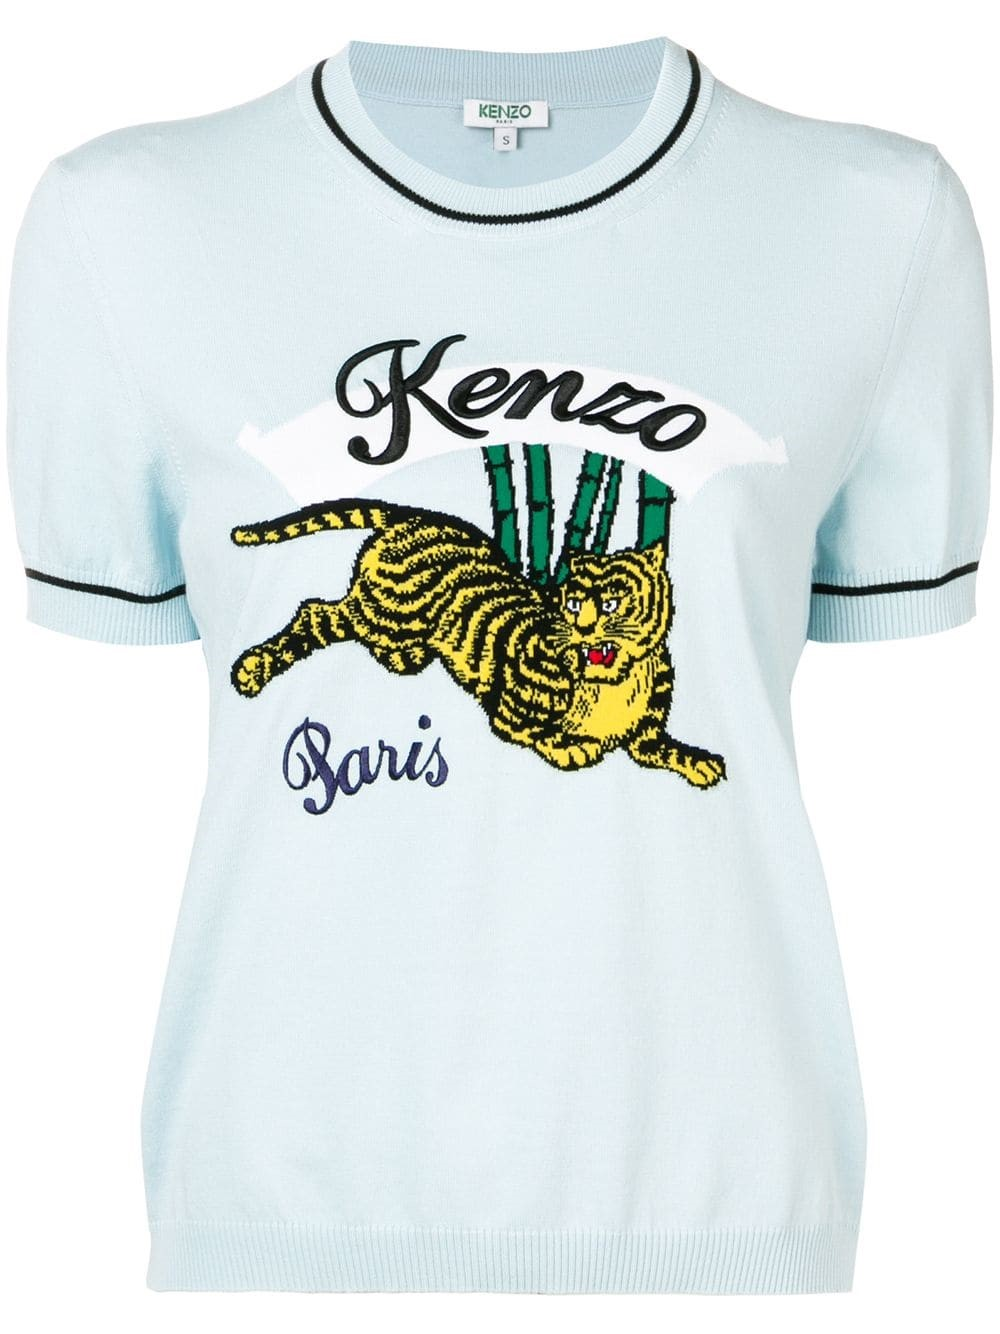 0fee07f8 kenzo TIGER PRINT T-SHIRT available on montiboutique.com - 27218